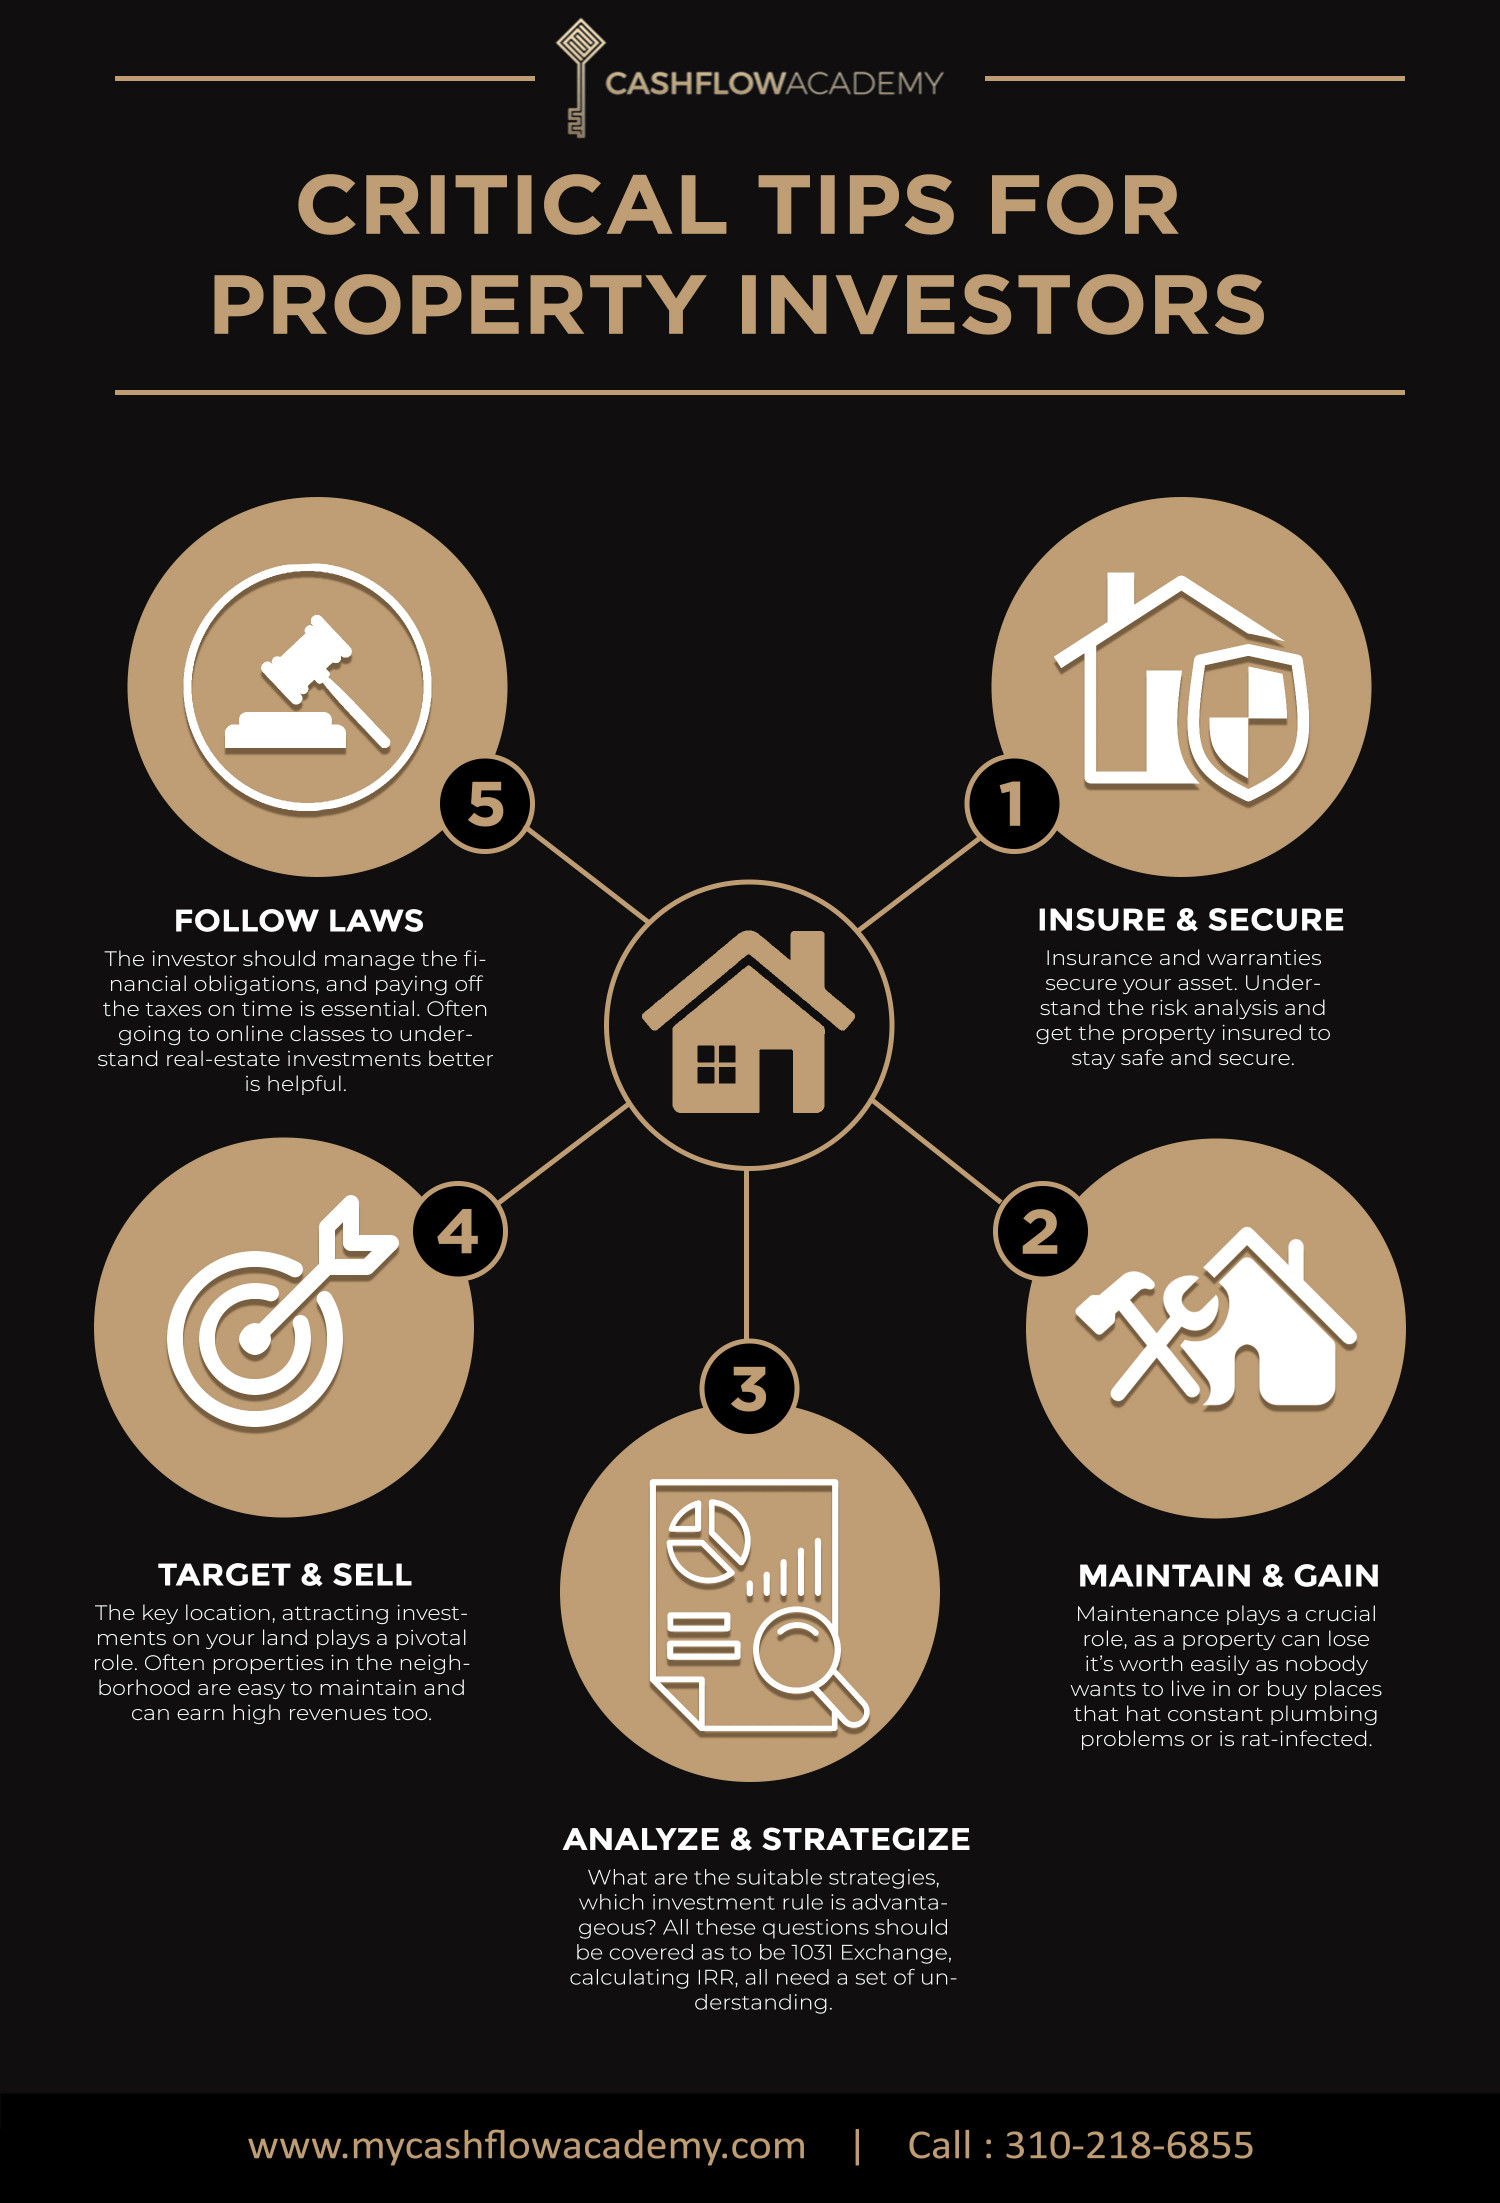 CRITICAL TIPS FOR PROPERTY INVESTORS Infographic